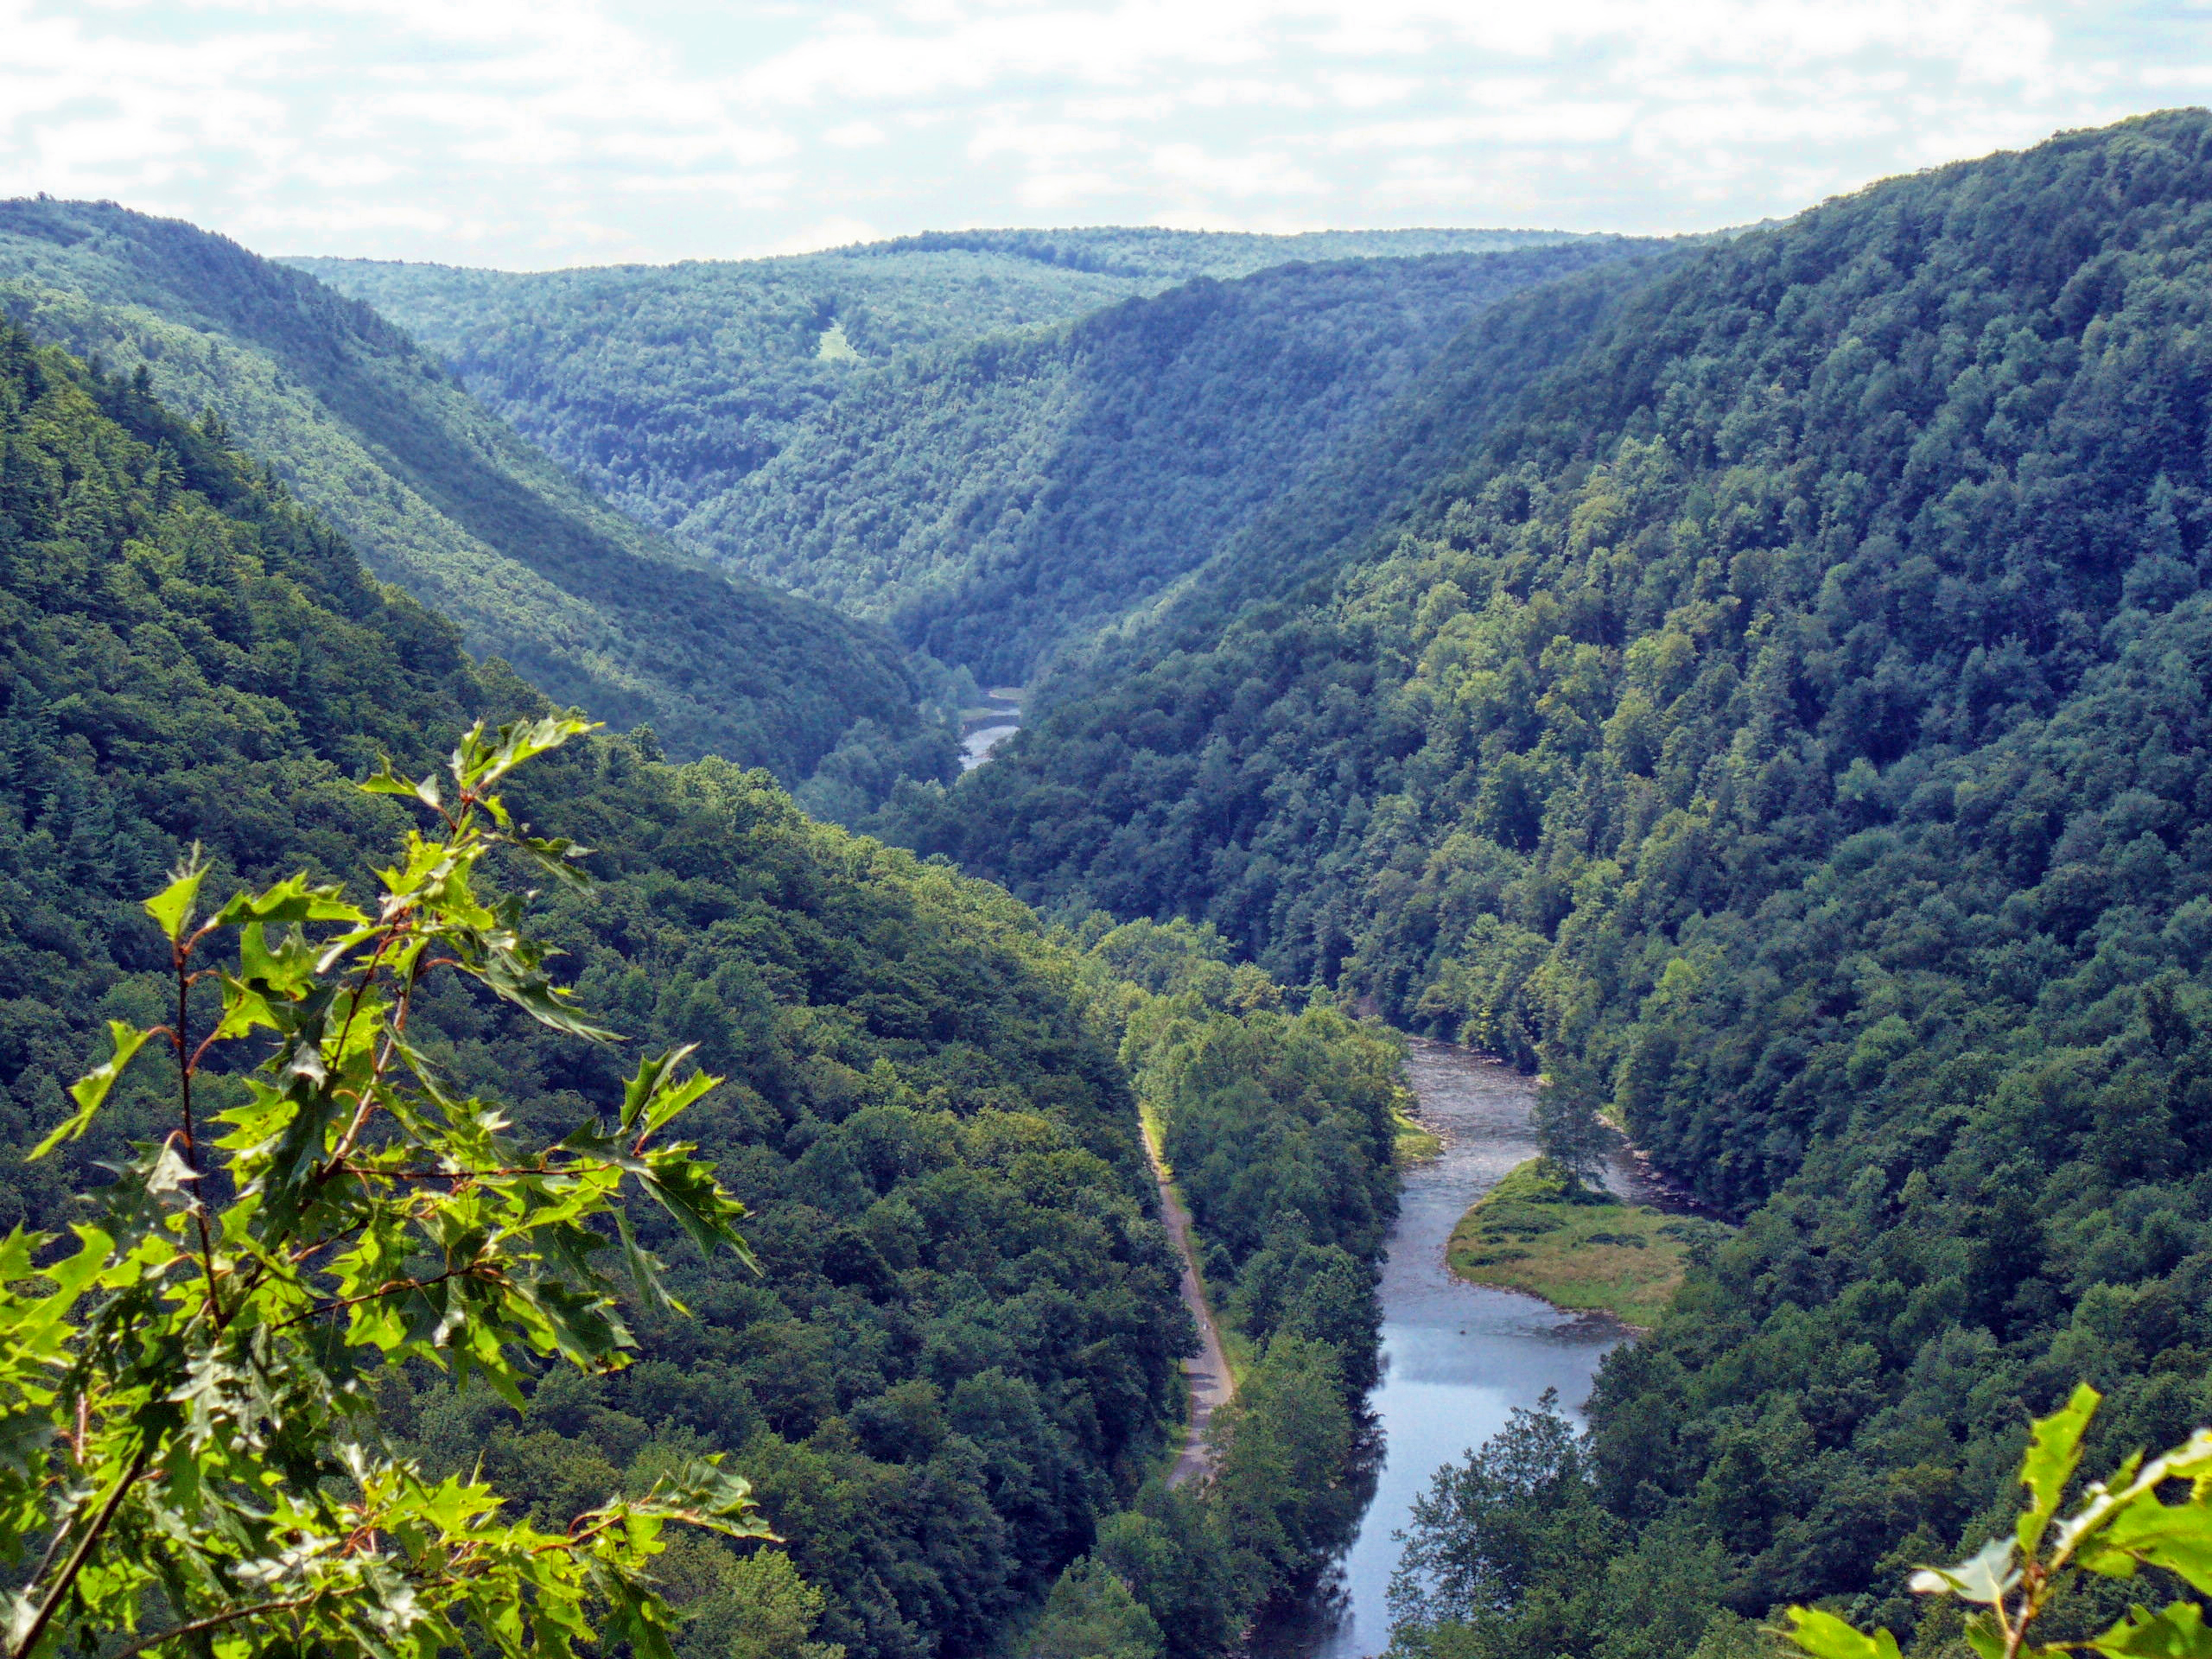 National Natural Landmark: Pine Creek Gorge